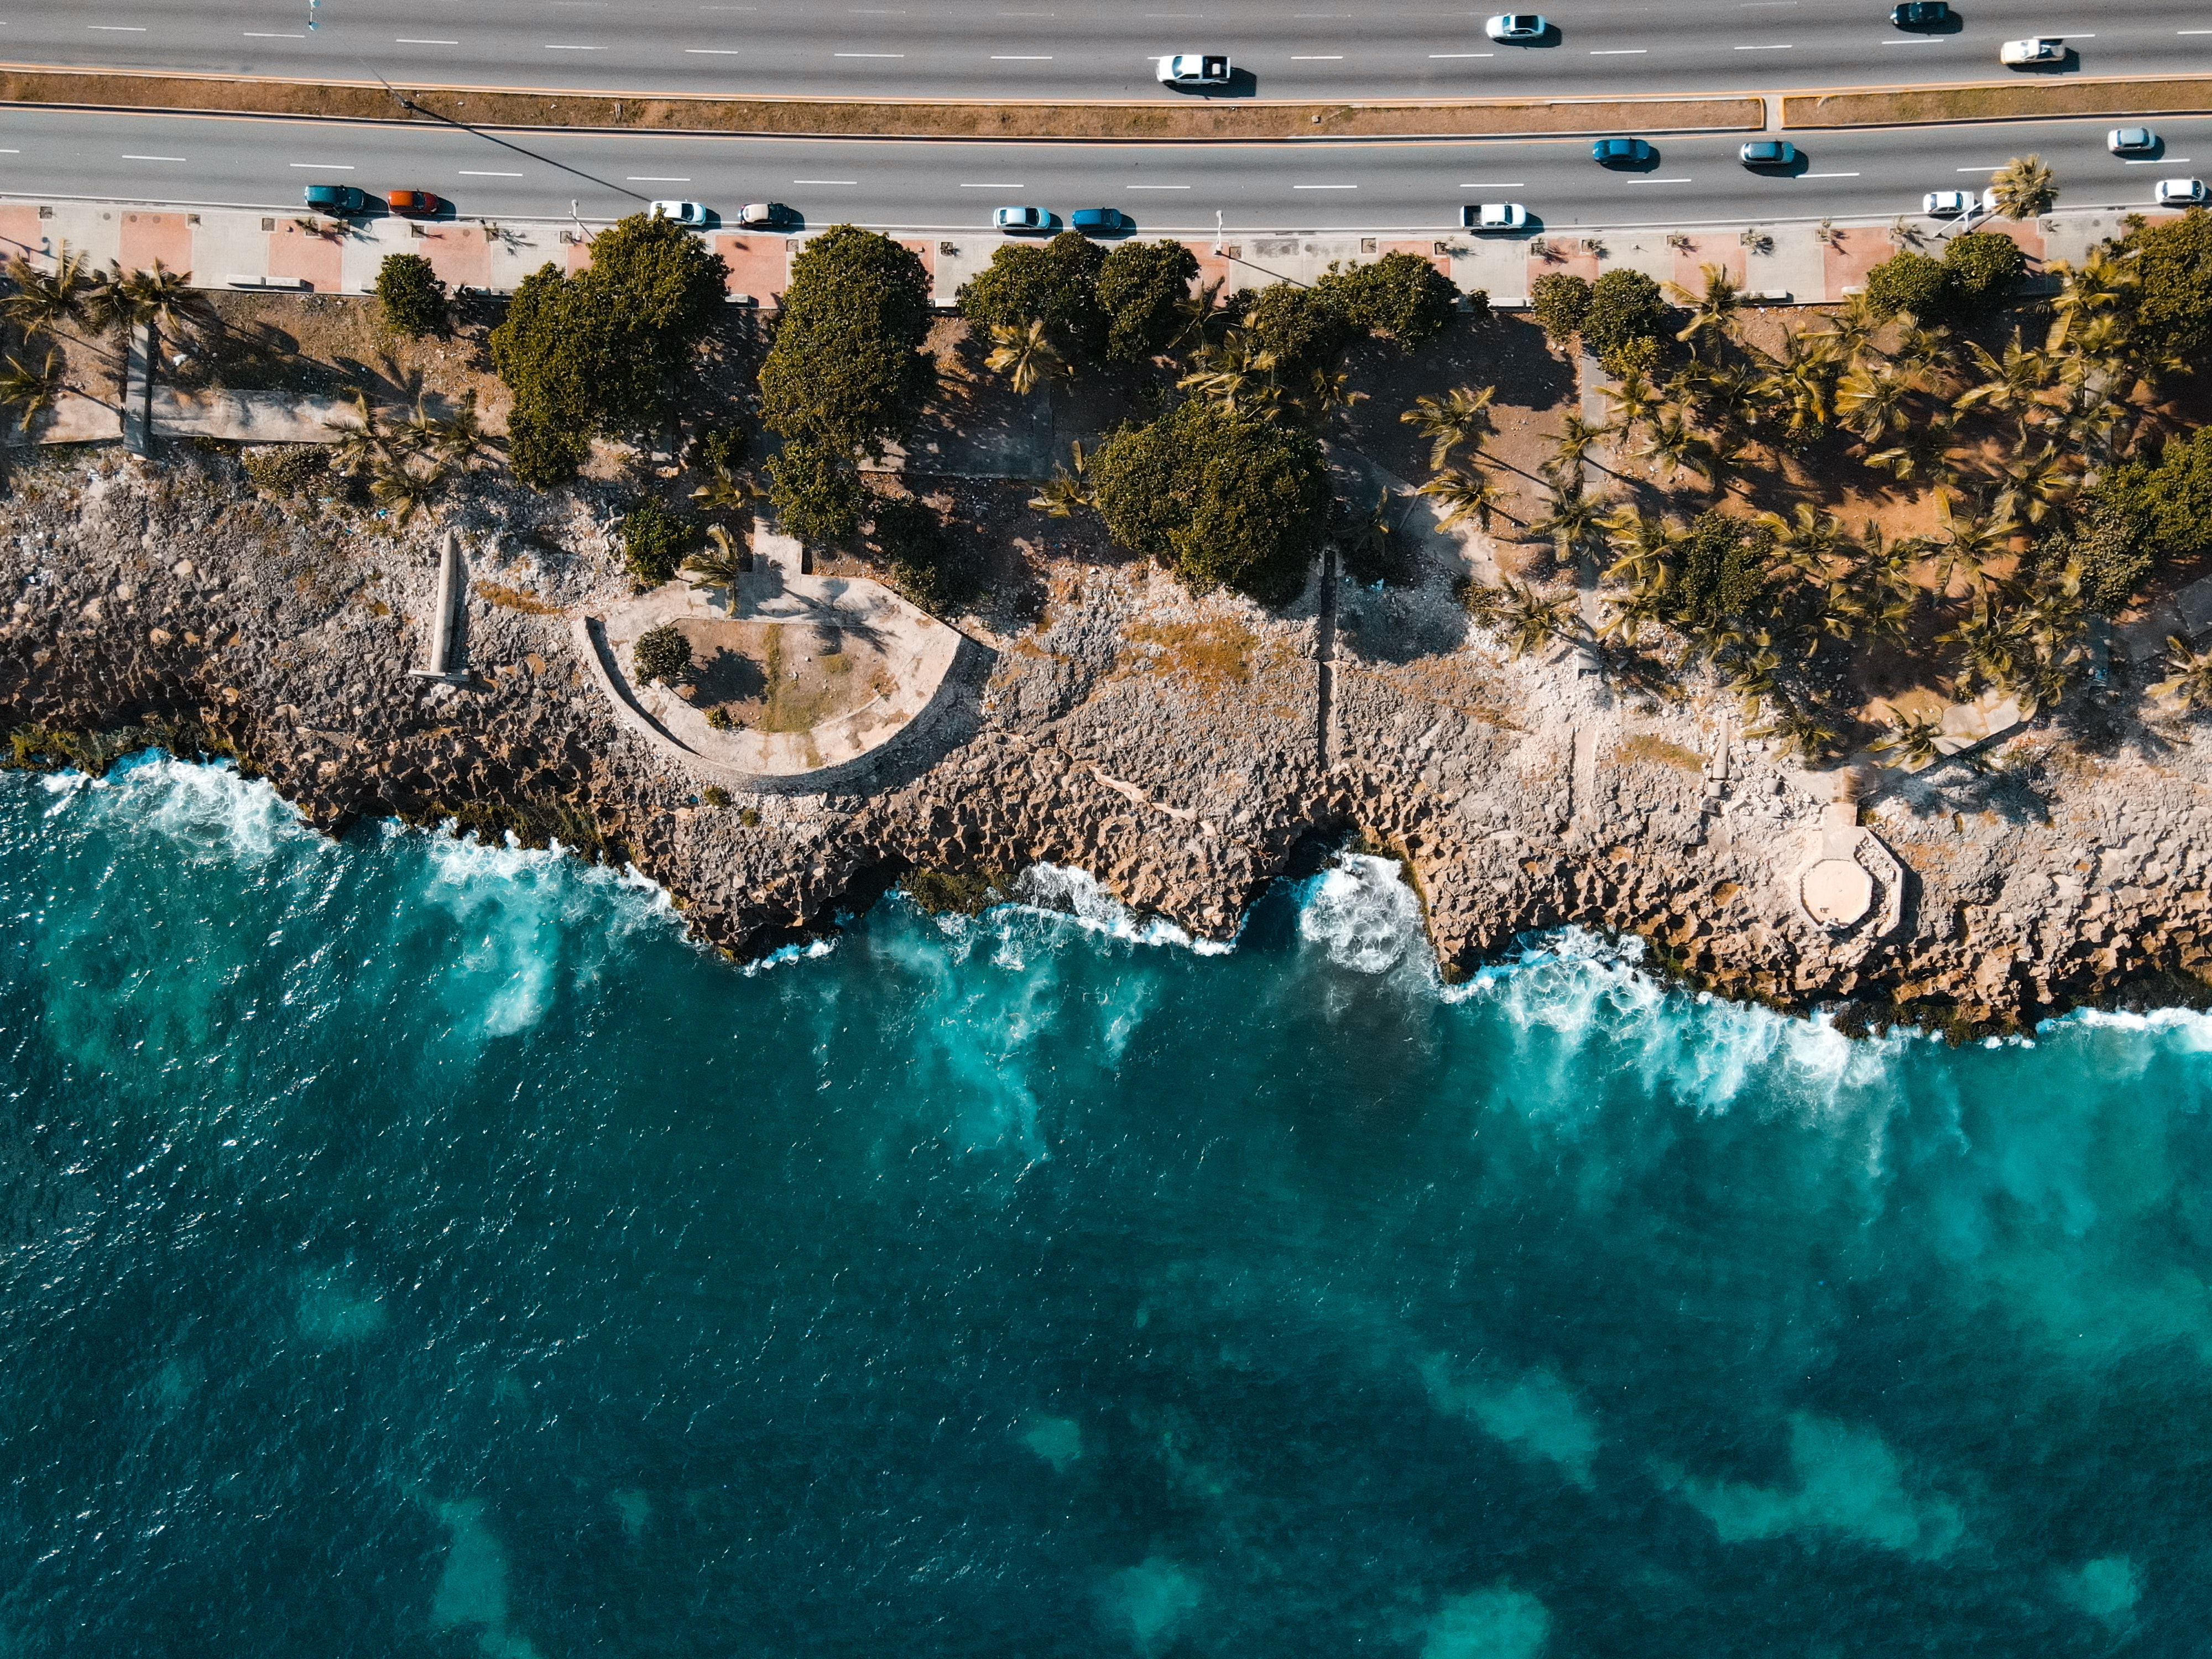 Aerial view of a coastline with a busy road going along side it